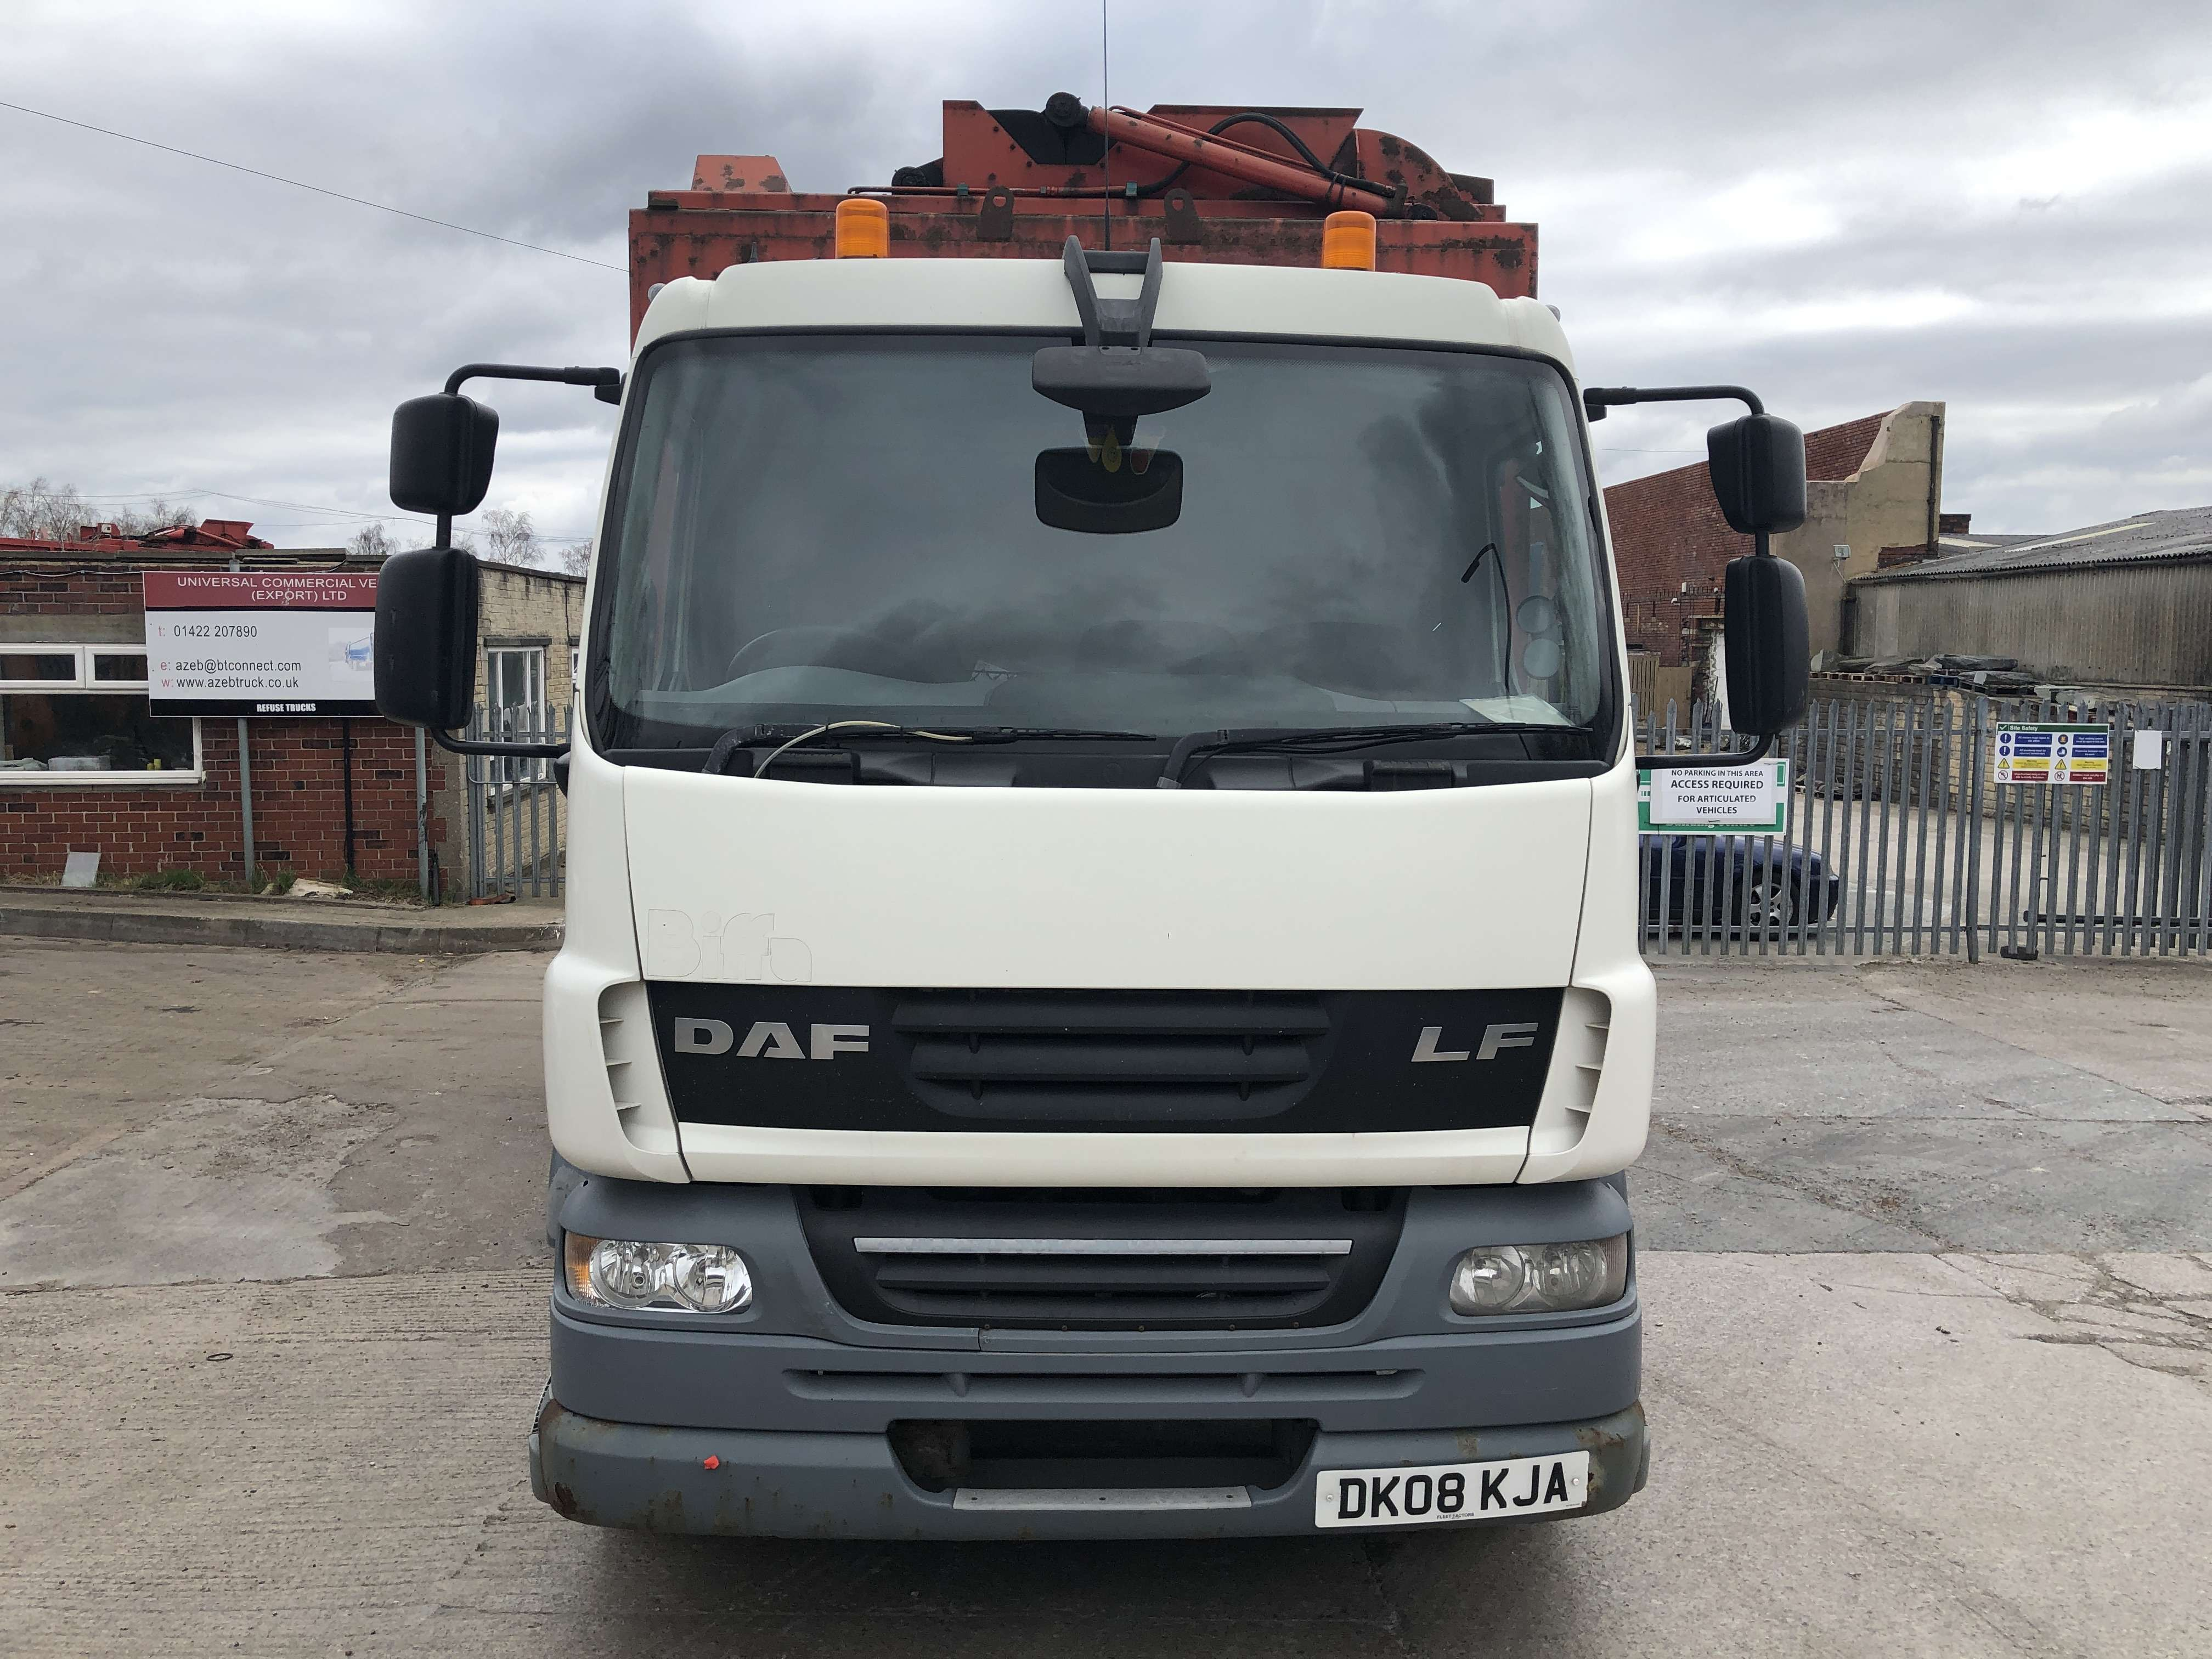 2008 DAF LF45.220 toploader refuse truck for sale 5